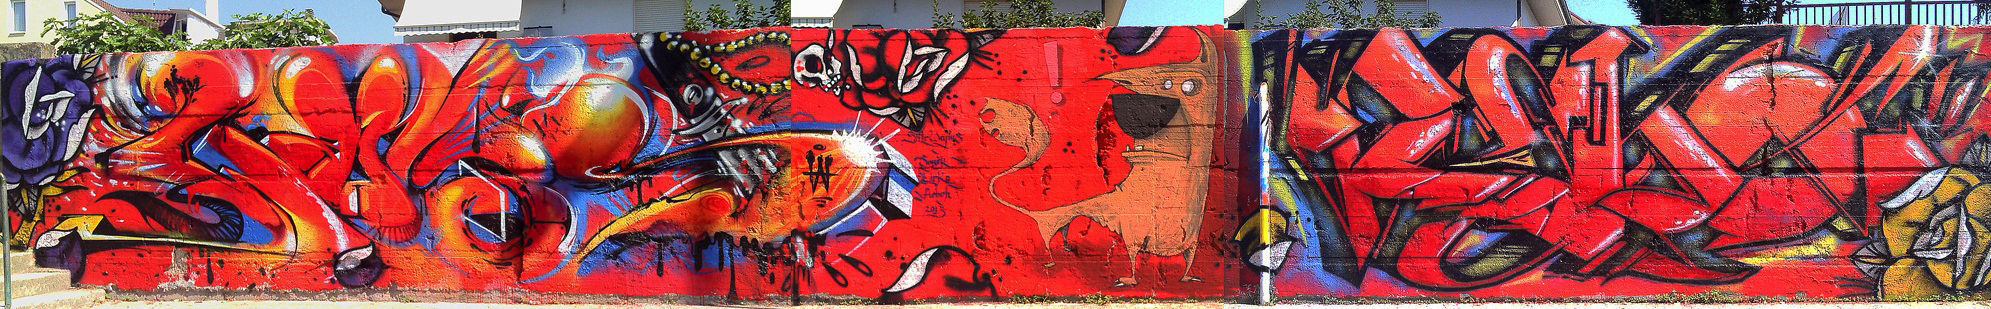 Artwork By Mr Wany in Grottammare